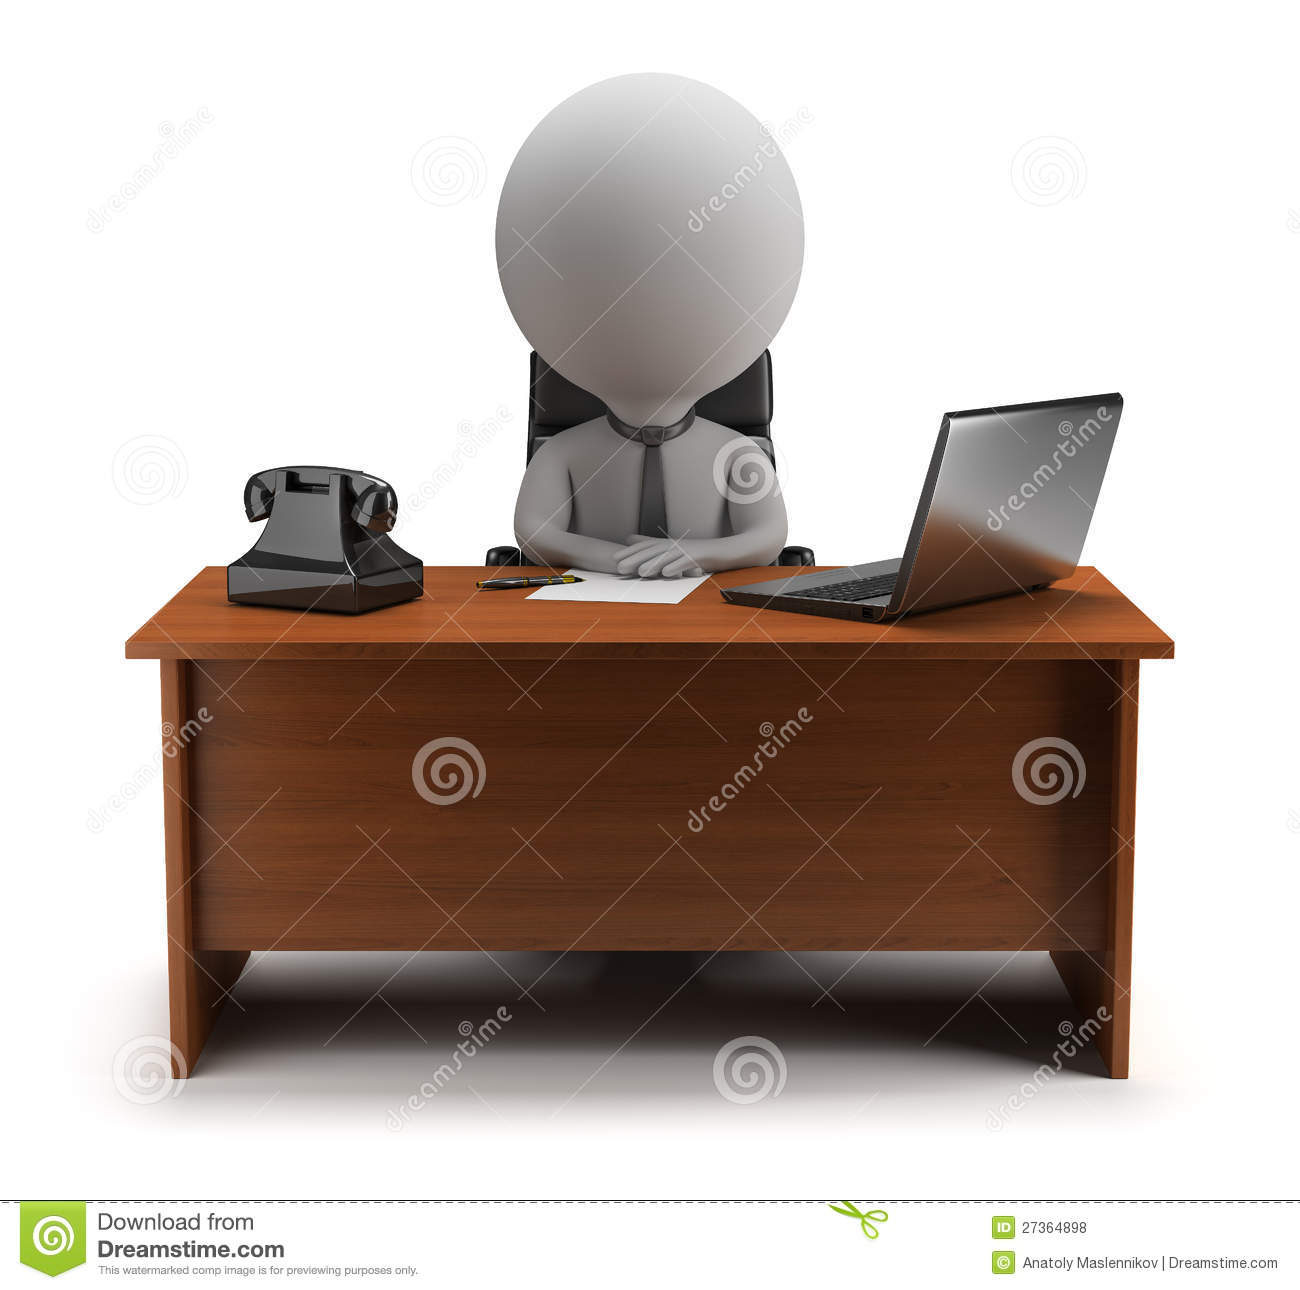 Stock Images Reception Room Modern Family Hotel Decoration Pay Attention To Design Image30761994 moreover Stock Images  puter Problems Image8153804 together with P 3218 Classic Medieval Sword furthermore Buck Ccdcpepu further Stock Photo Cartoon Children Sitting Learning Illustration Children Xxl Beautiful Colorful Image35899050. on xl desk chair